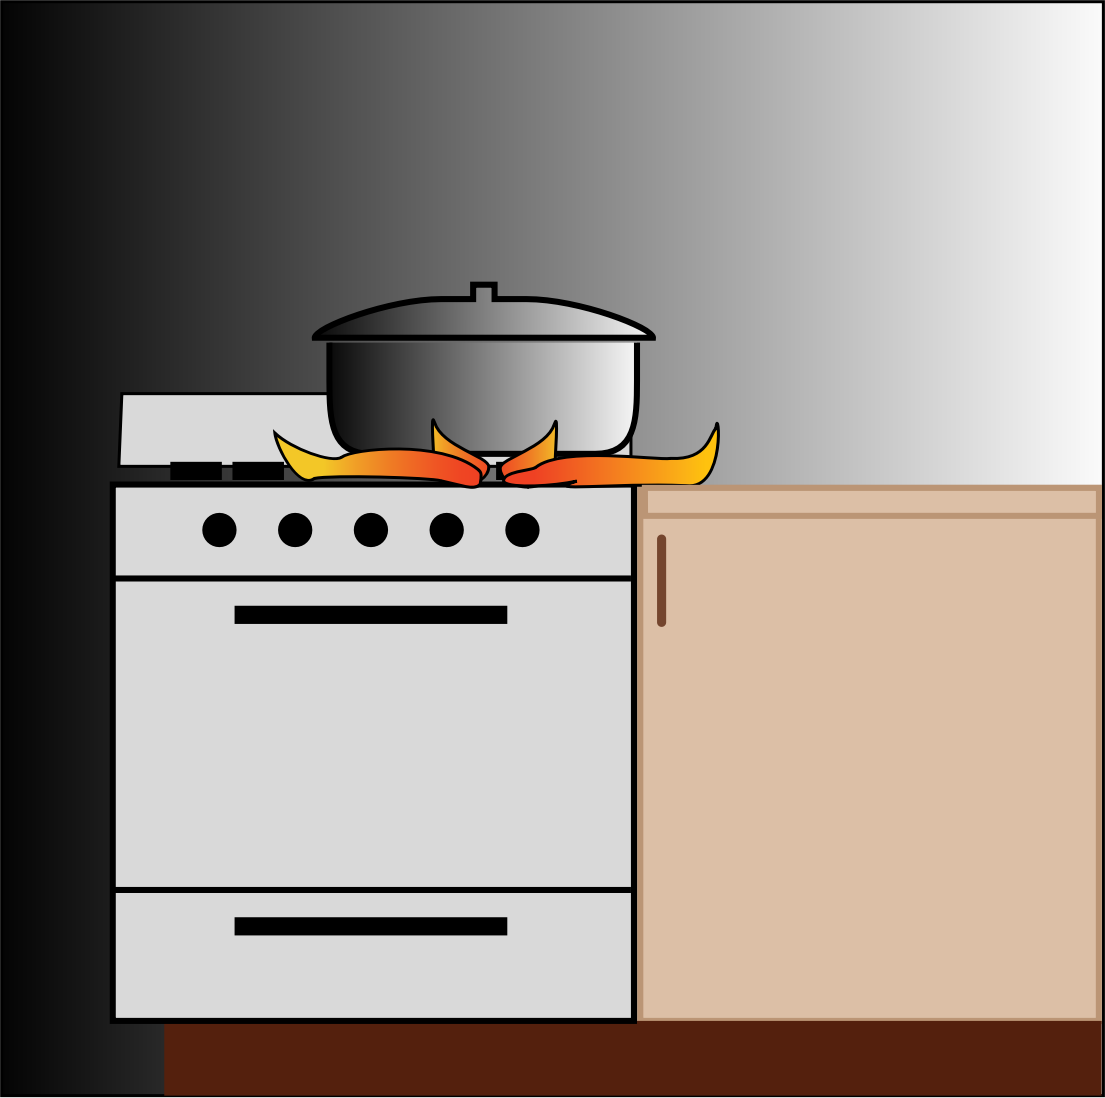 Clipart - Pot on stove